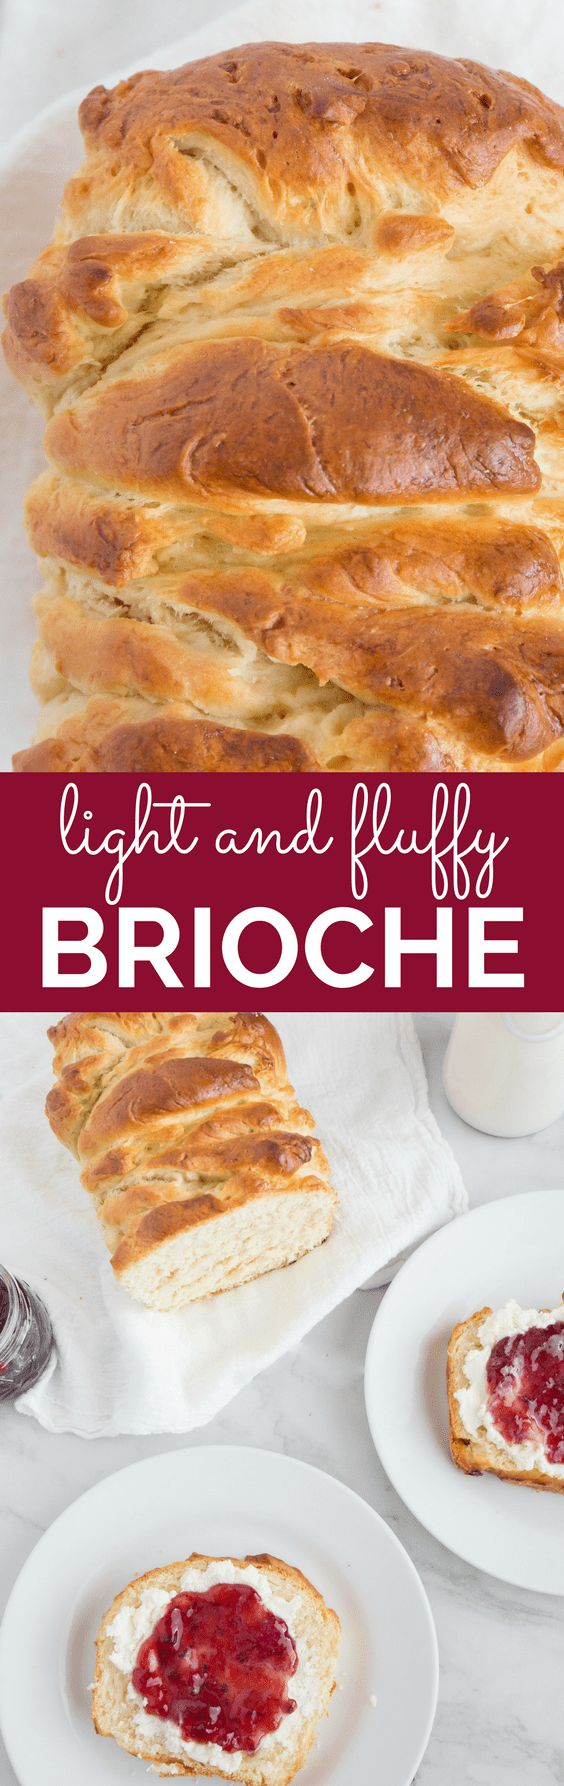 You won't believe how easy this brioche bread is to make! This light and fluffy bread is perfect for breakfast, topped with your favorite jam. It truly is a delightful French classic. | wanderzestblog.com #recipe #brioche #french #bread